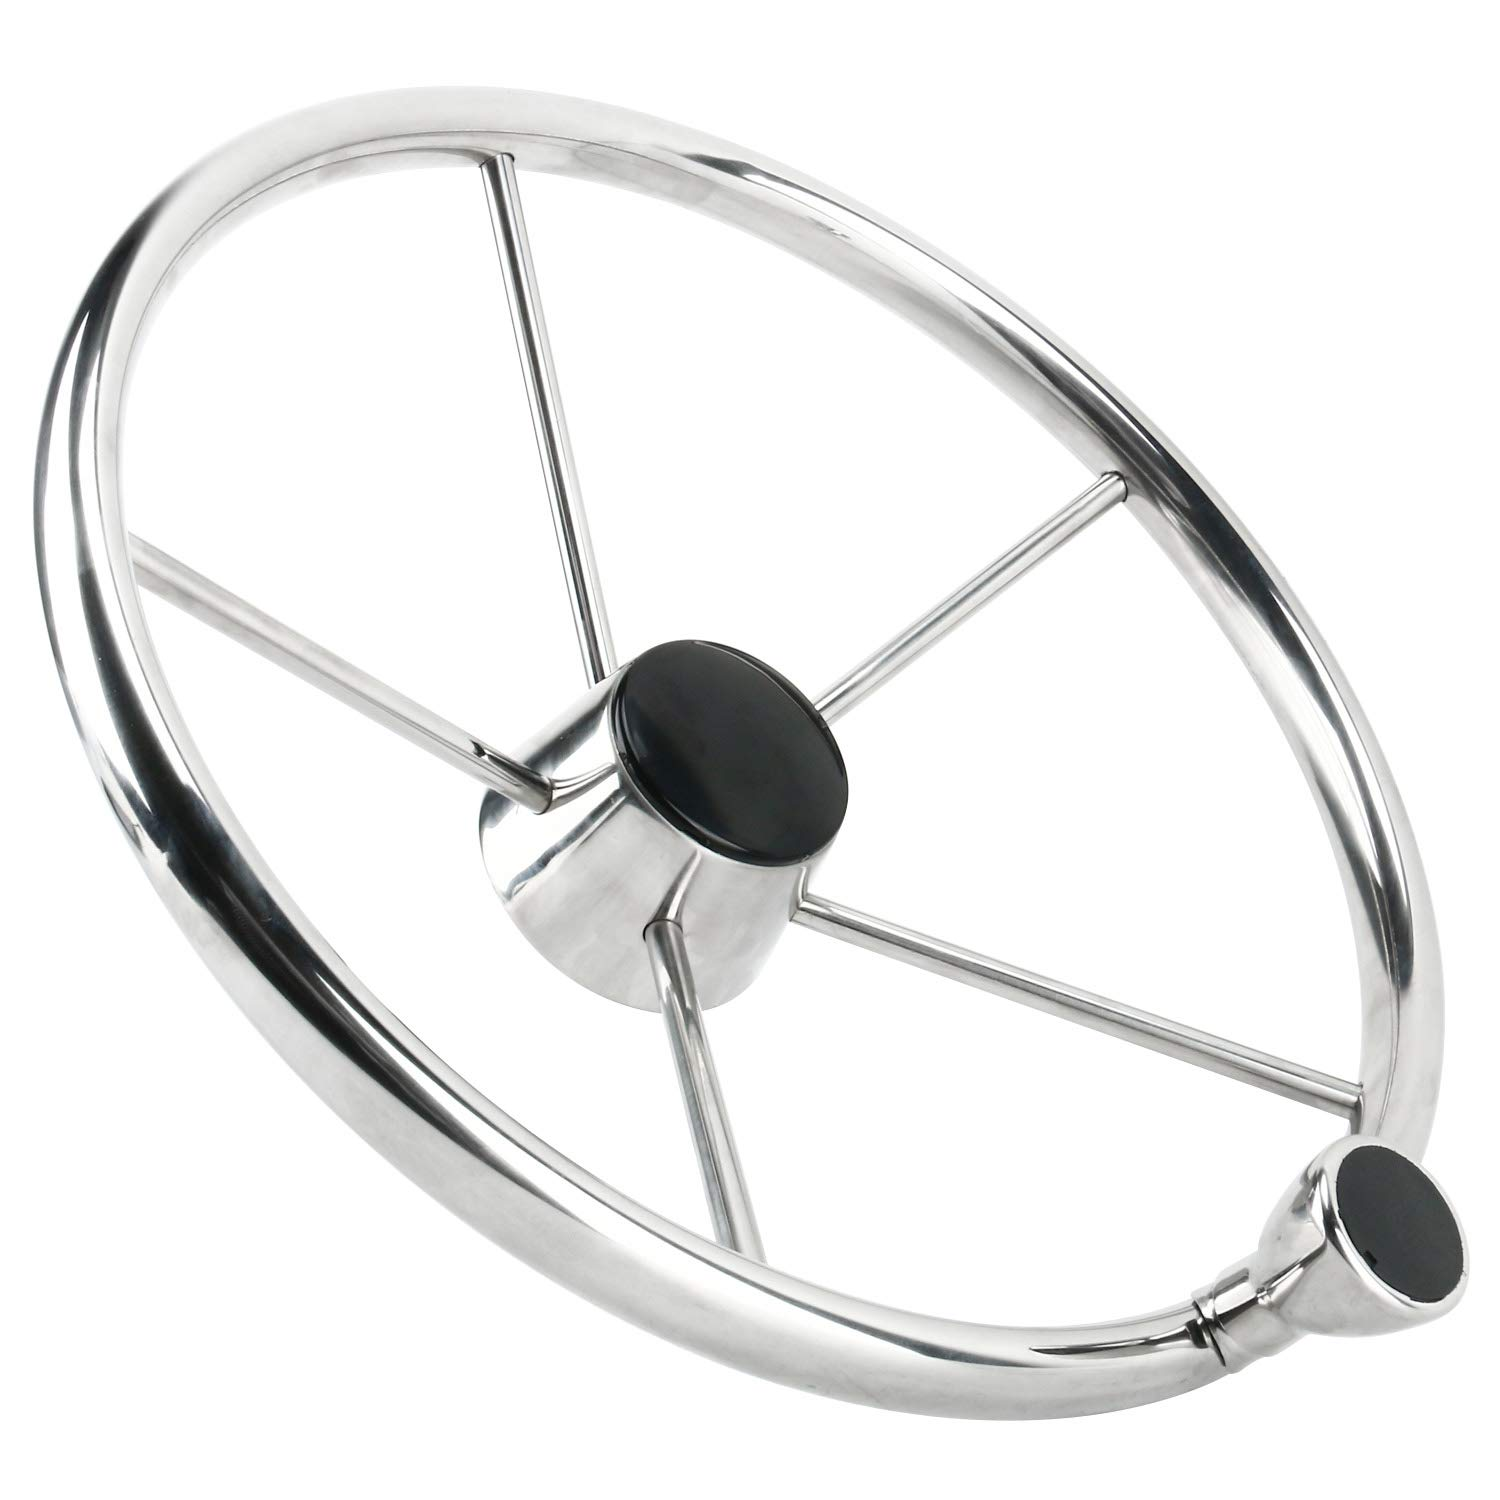 Amarine Made 5 Spoke 25 Deg Stainless Steel Boat Steering Wheel with Control Knob,Fits 3/4'' Shaft for Marine Boat (Dia. 15-1/2 Inch) by Amarine Made